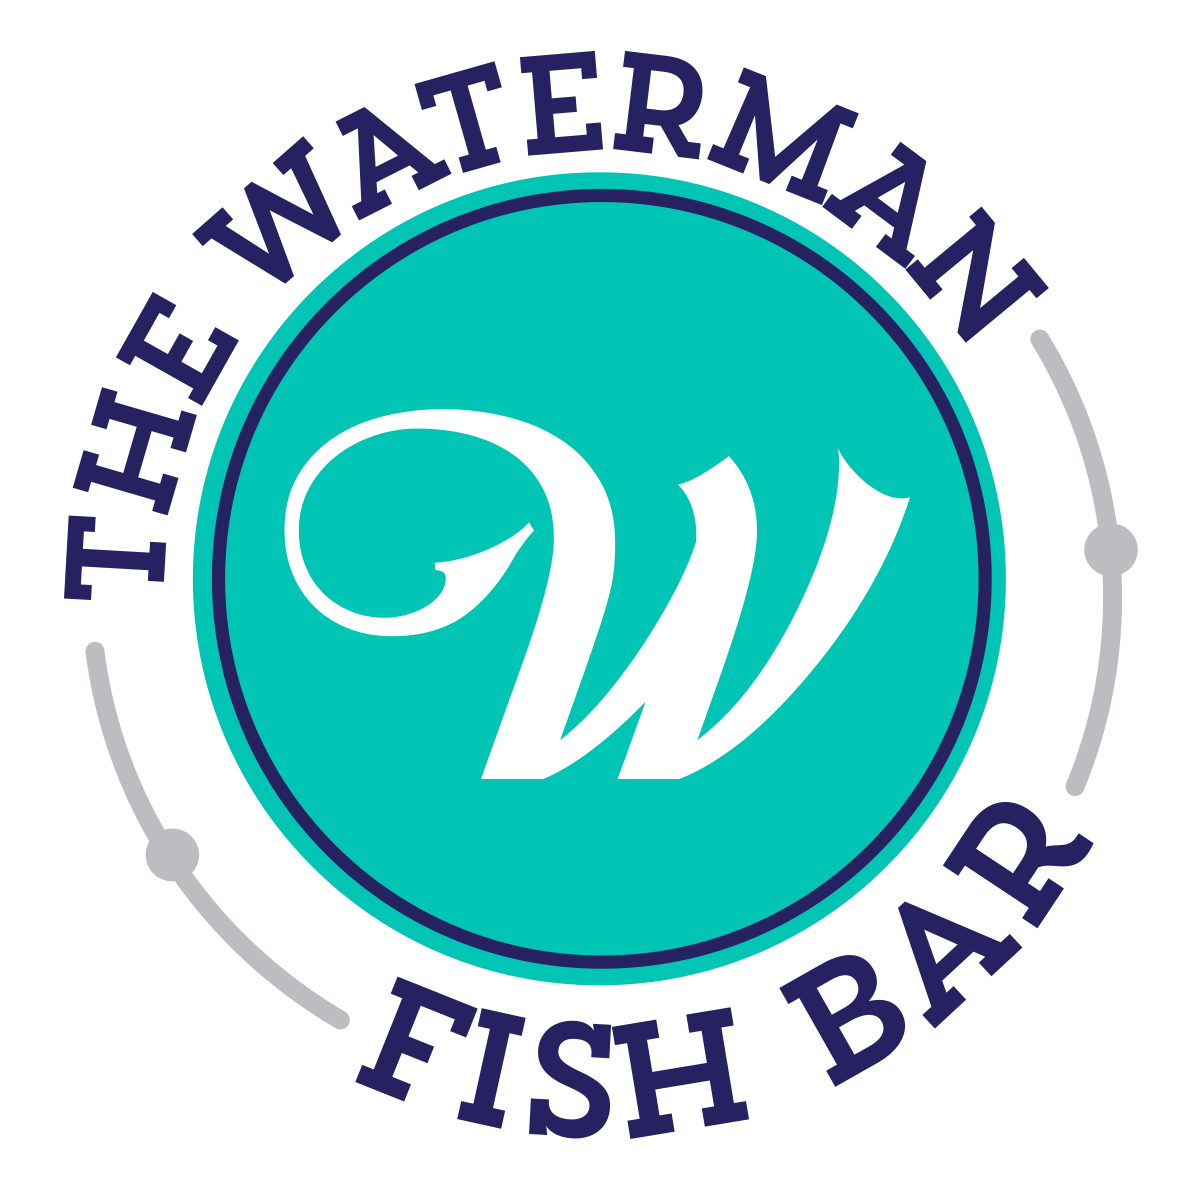 The Waterman Fish Bar